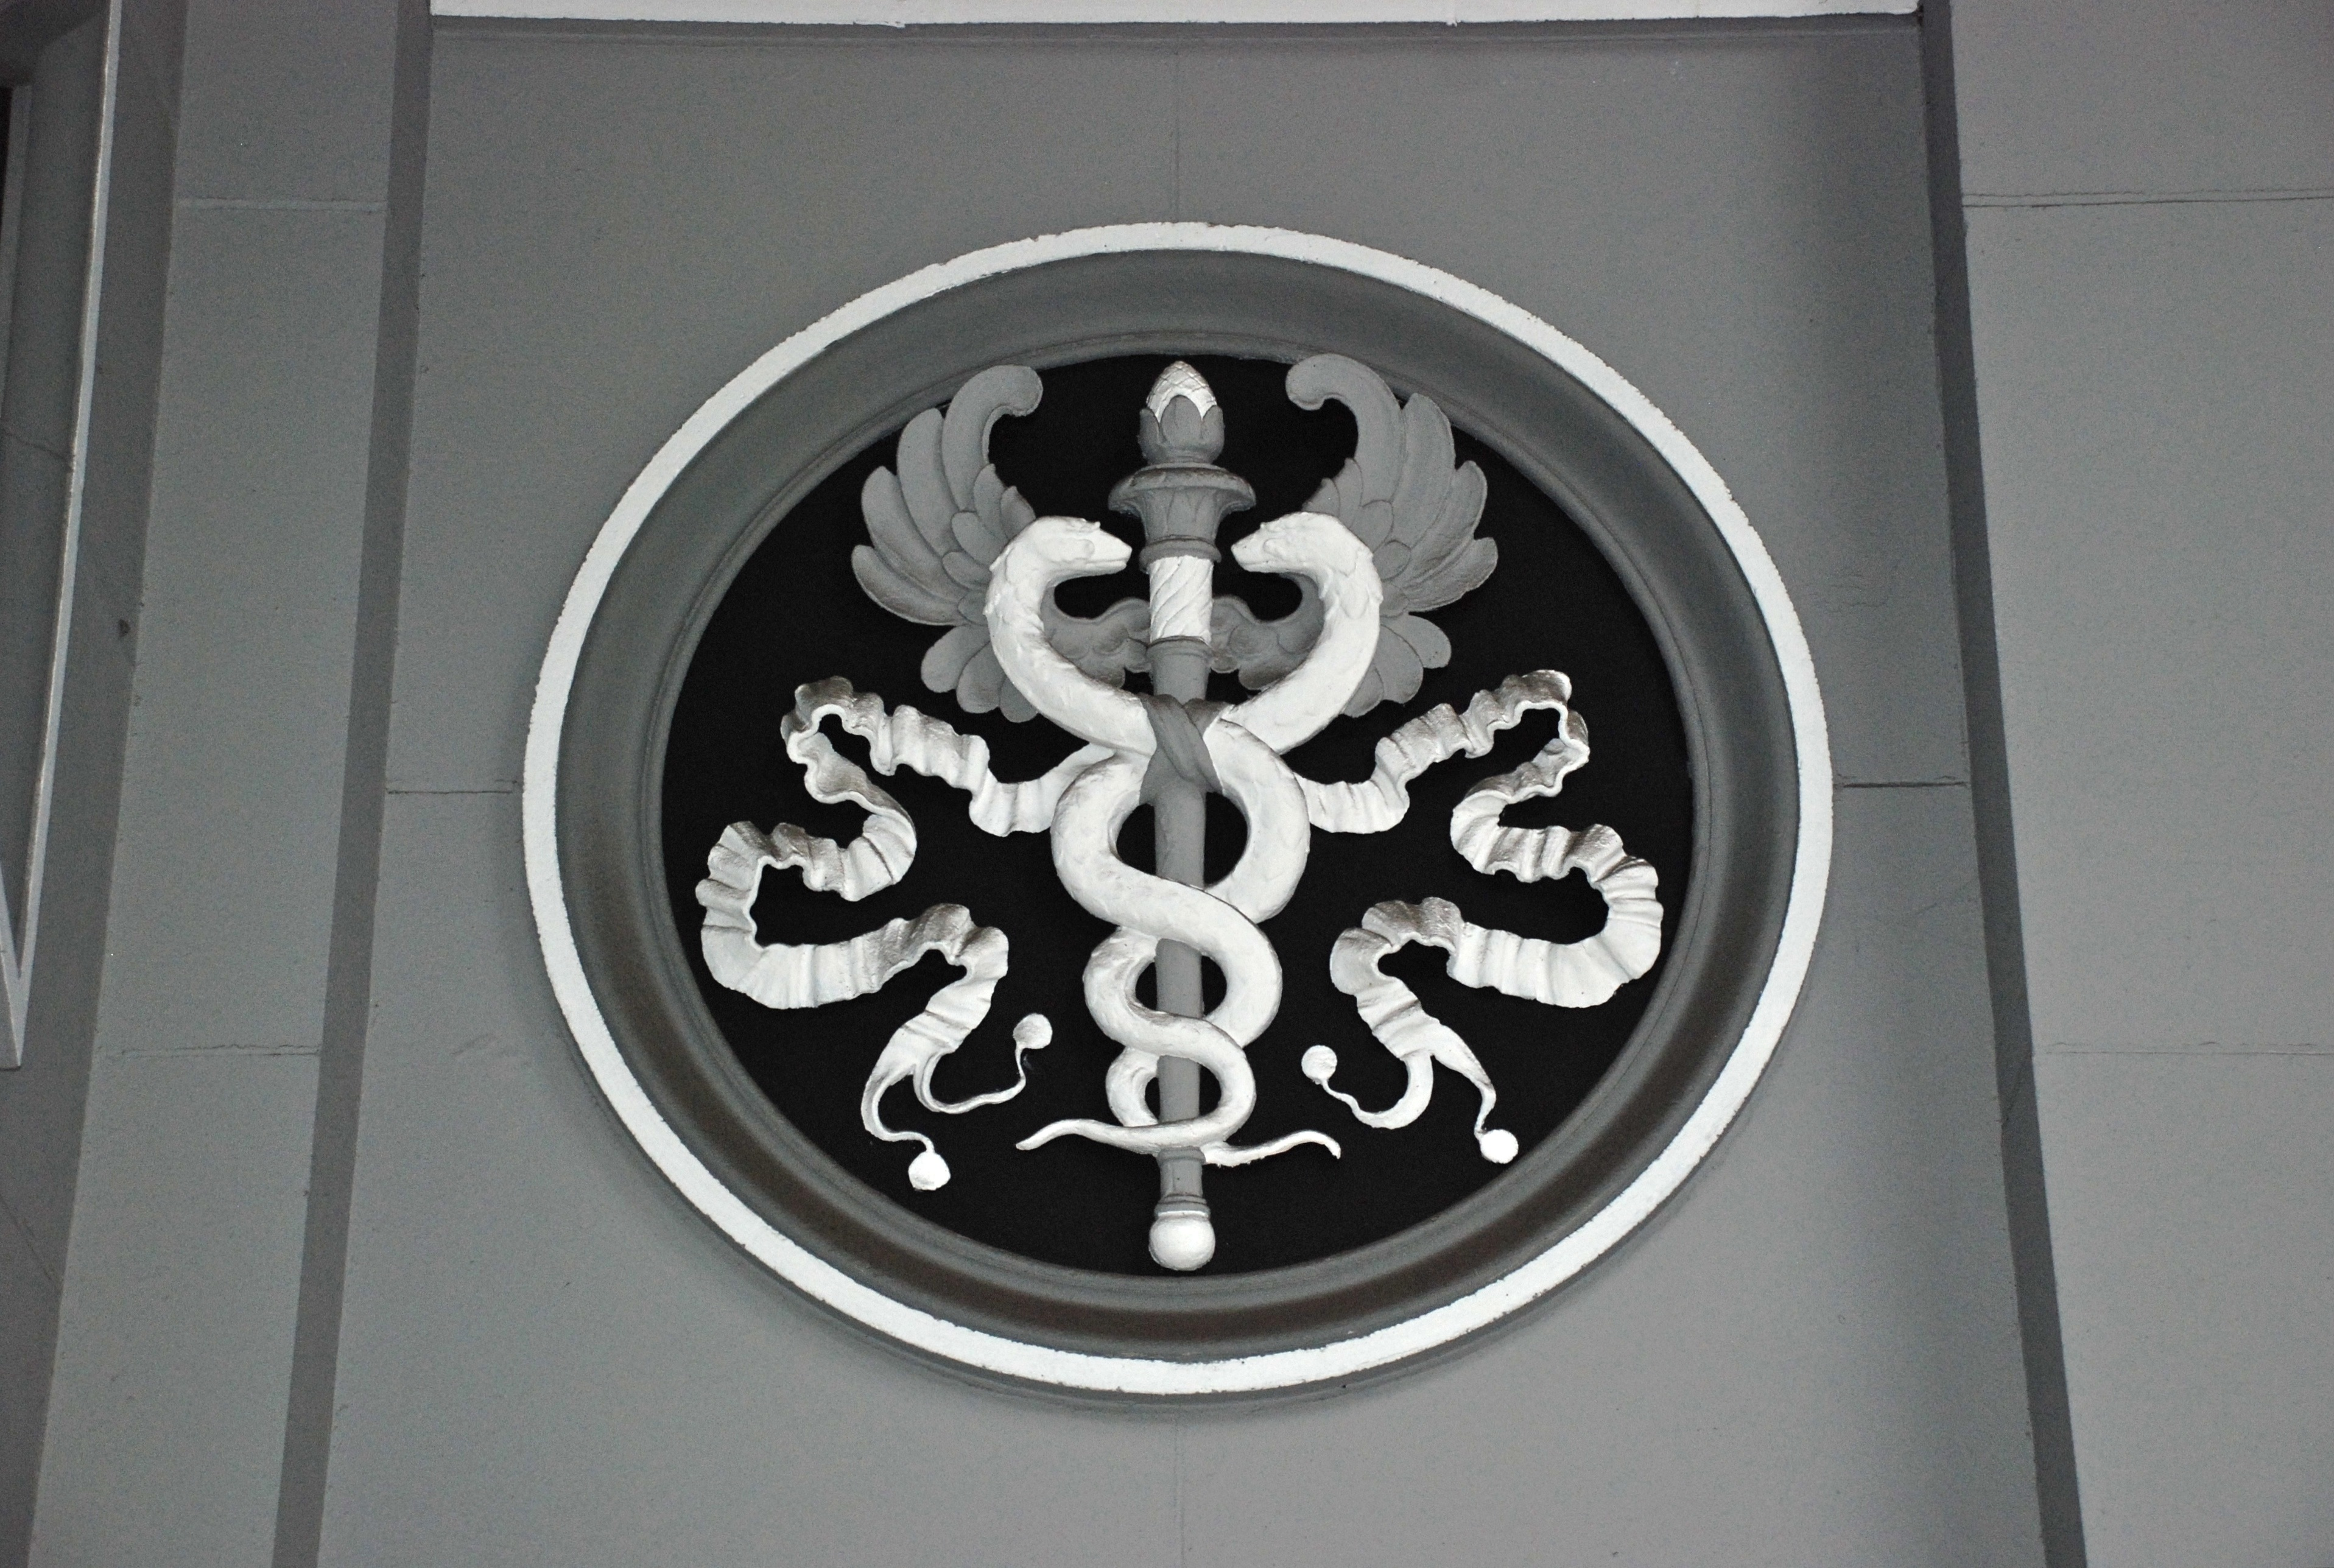 Caduceus as a symbol of medicine